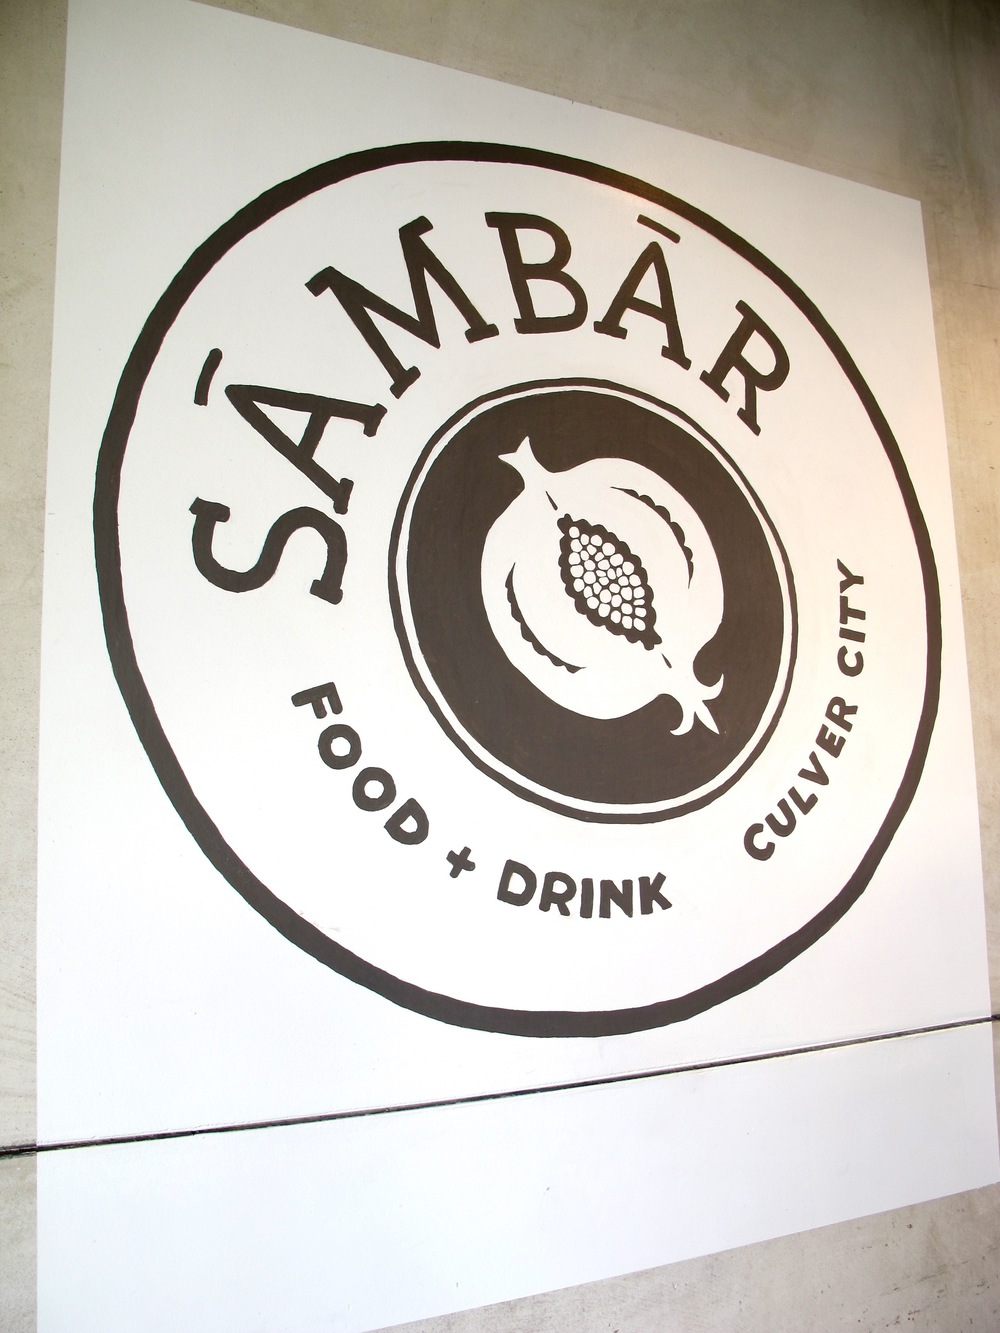 Sambar Culver City